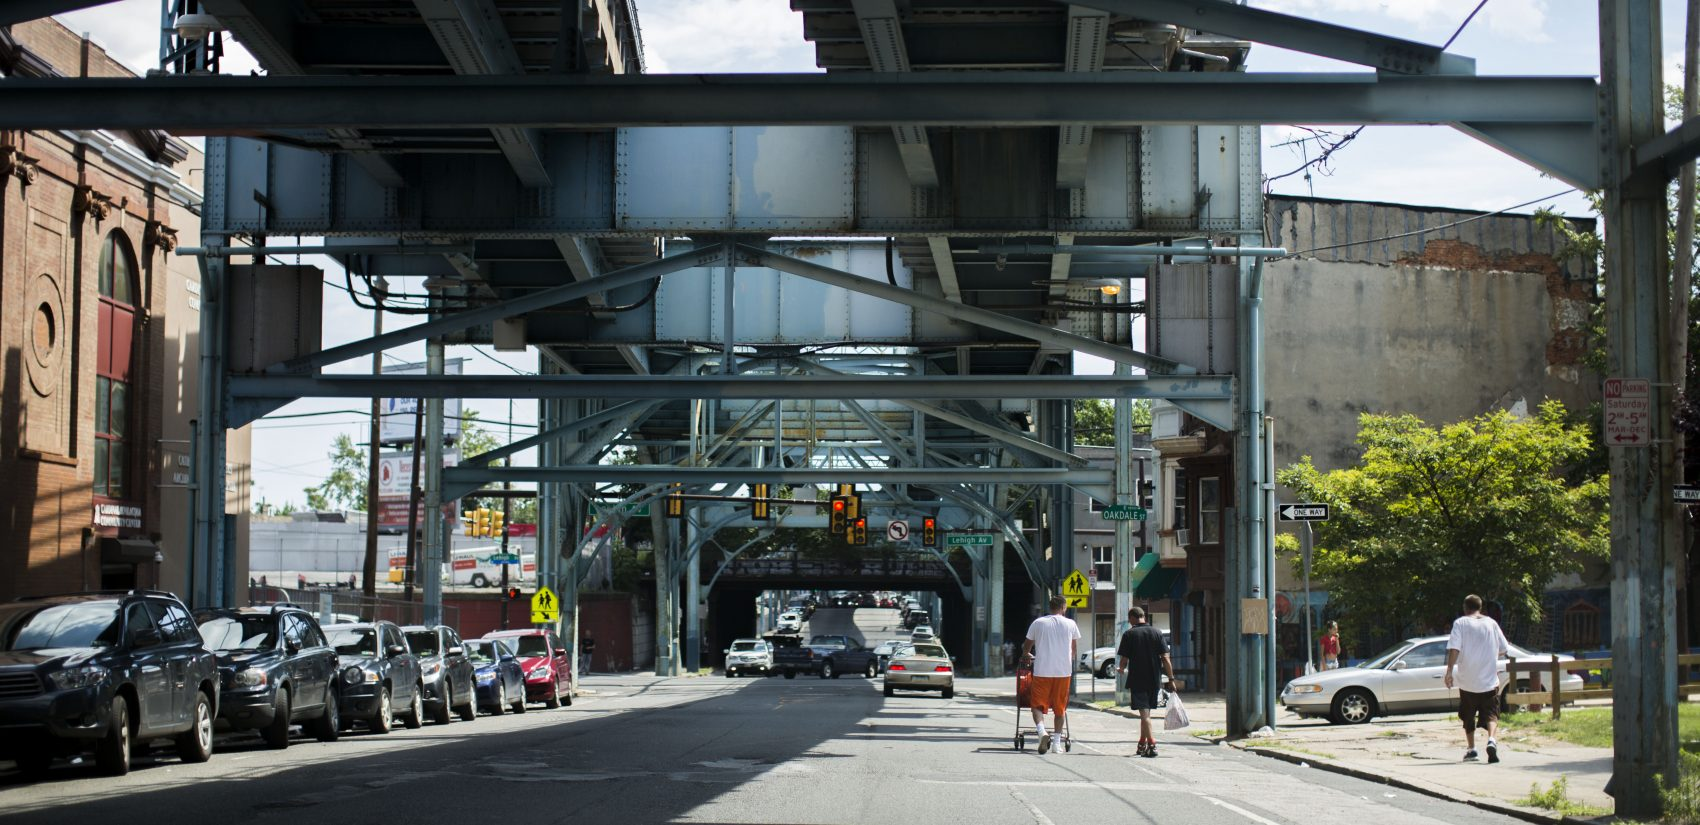 The tracks of Philadelphia's Market-Frankford El train run above Front Street through Kensington. (Jessica Kourkounis/For Keystone Crossroads)